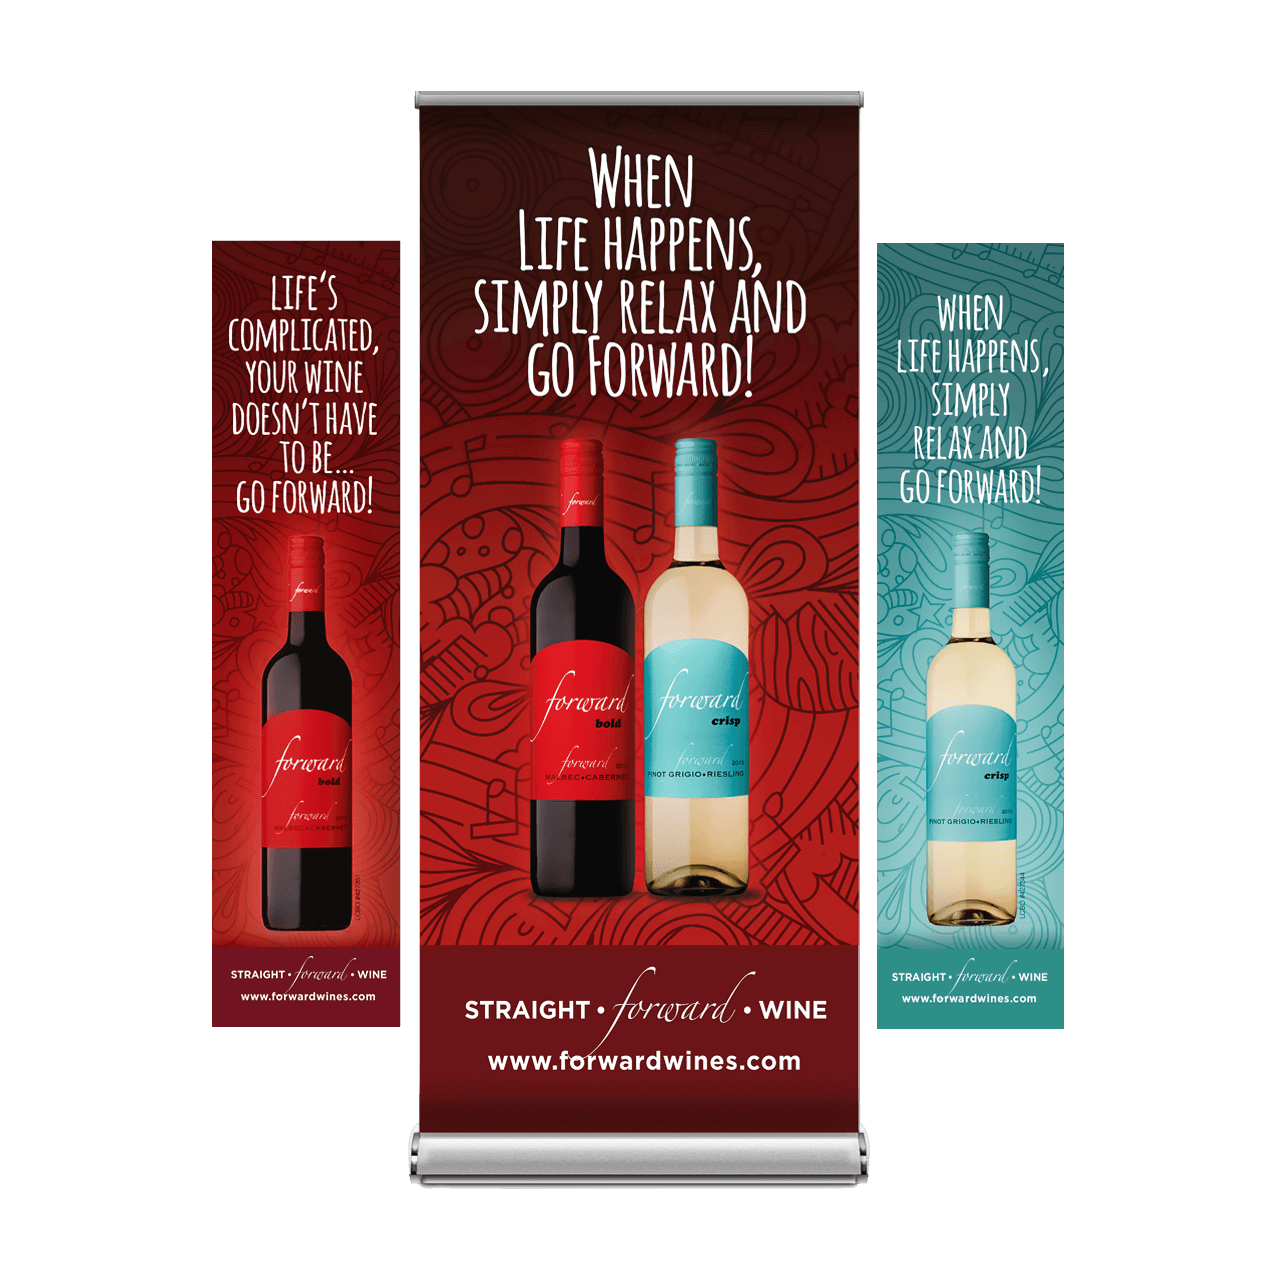 Banner Design of Forward Wines Peele Island Winery by BANG! creative strategy by design